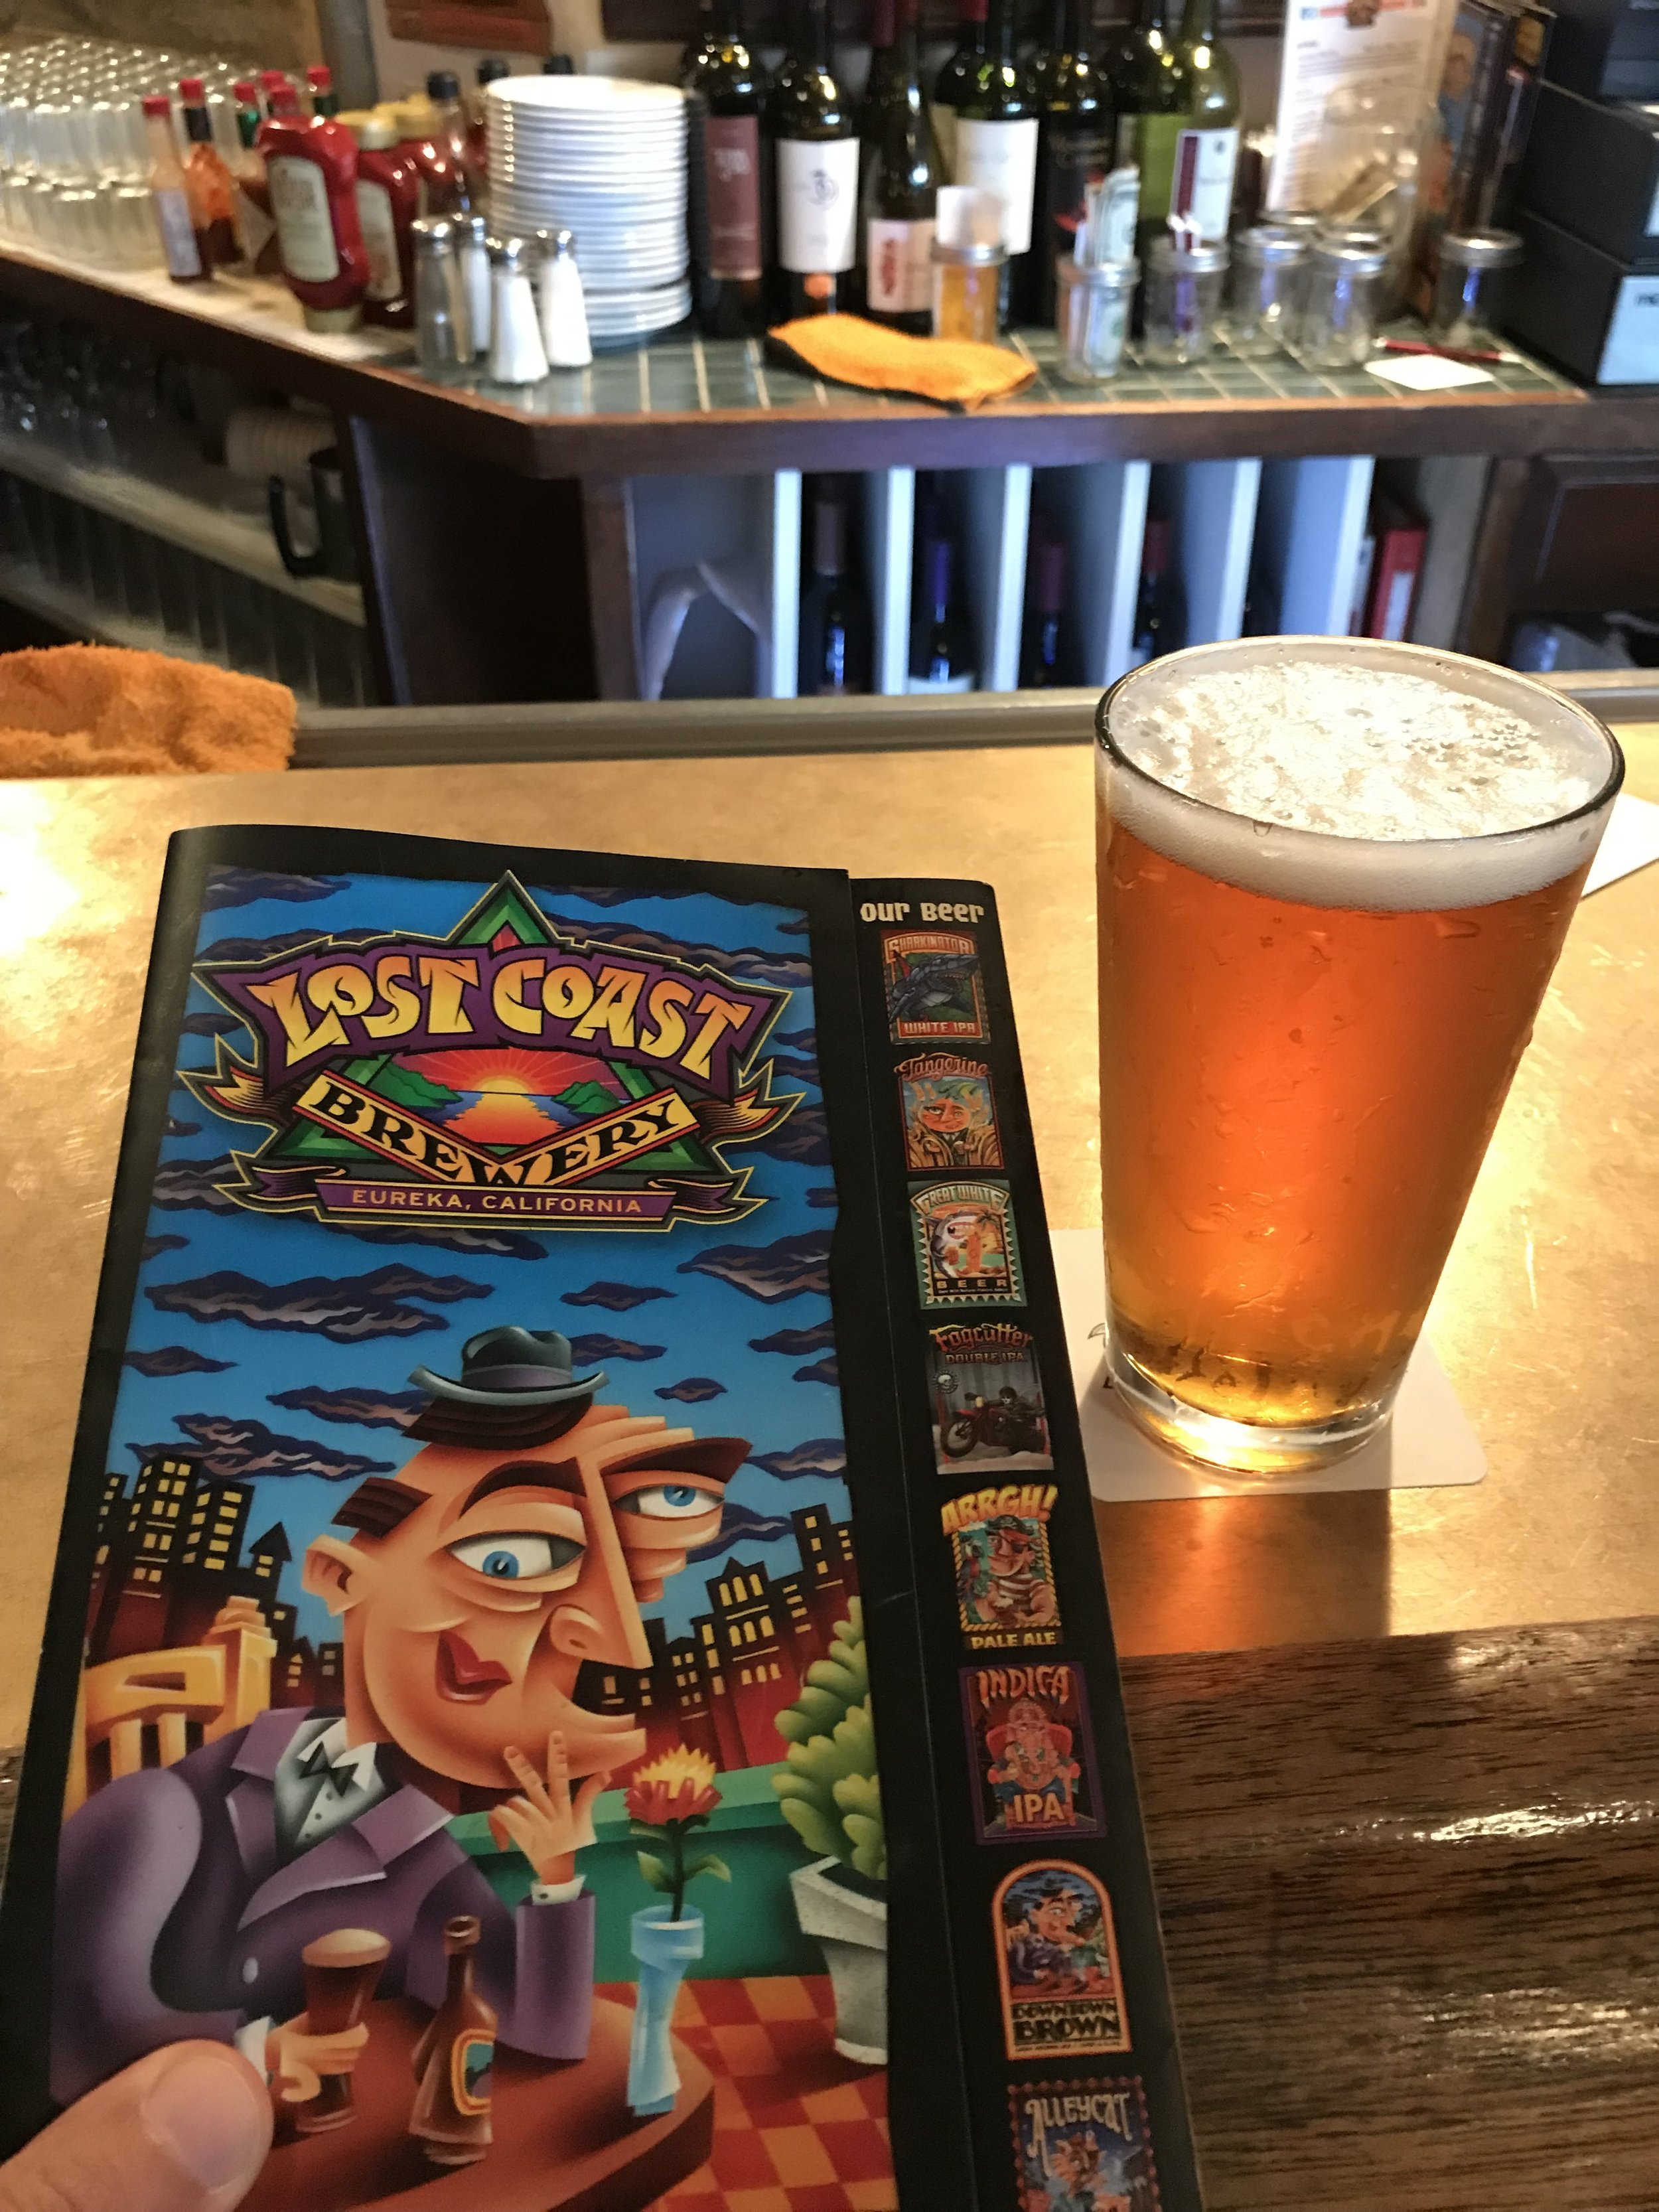 """Finish off your day of hiking with a tasty cold one at  Lost Coast Brewery  in Eureka! We stayed at """"Lulu's House"""" on  AirBnB  and had a wonderful time in this coastal town!"""